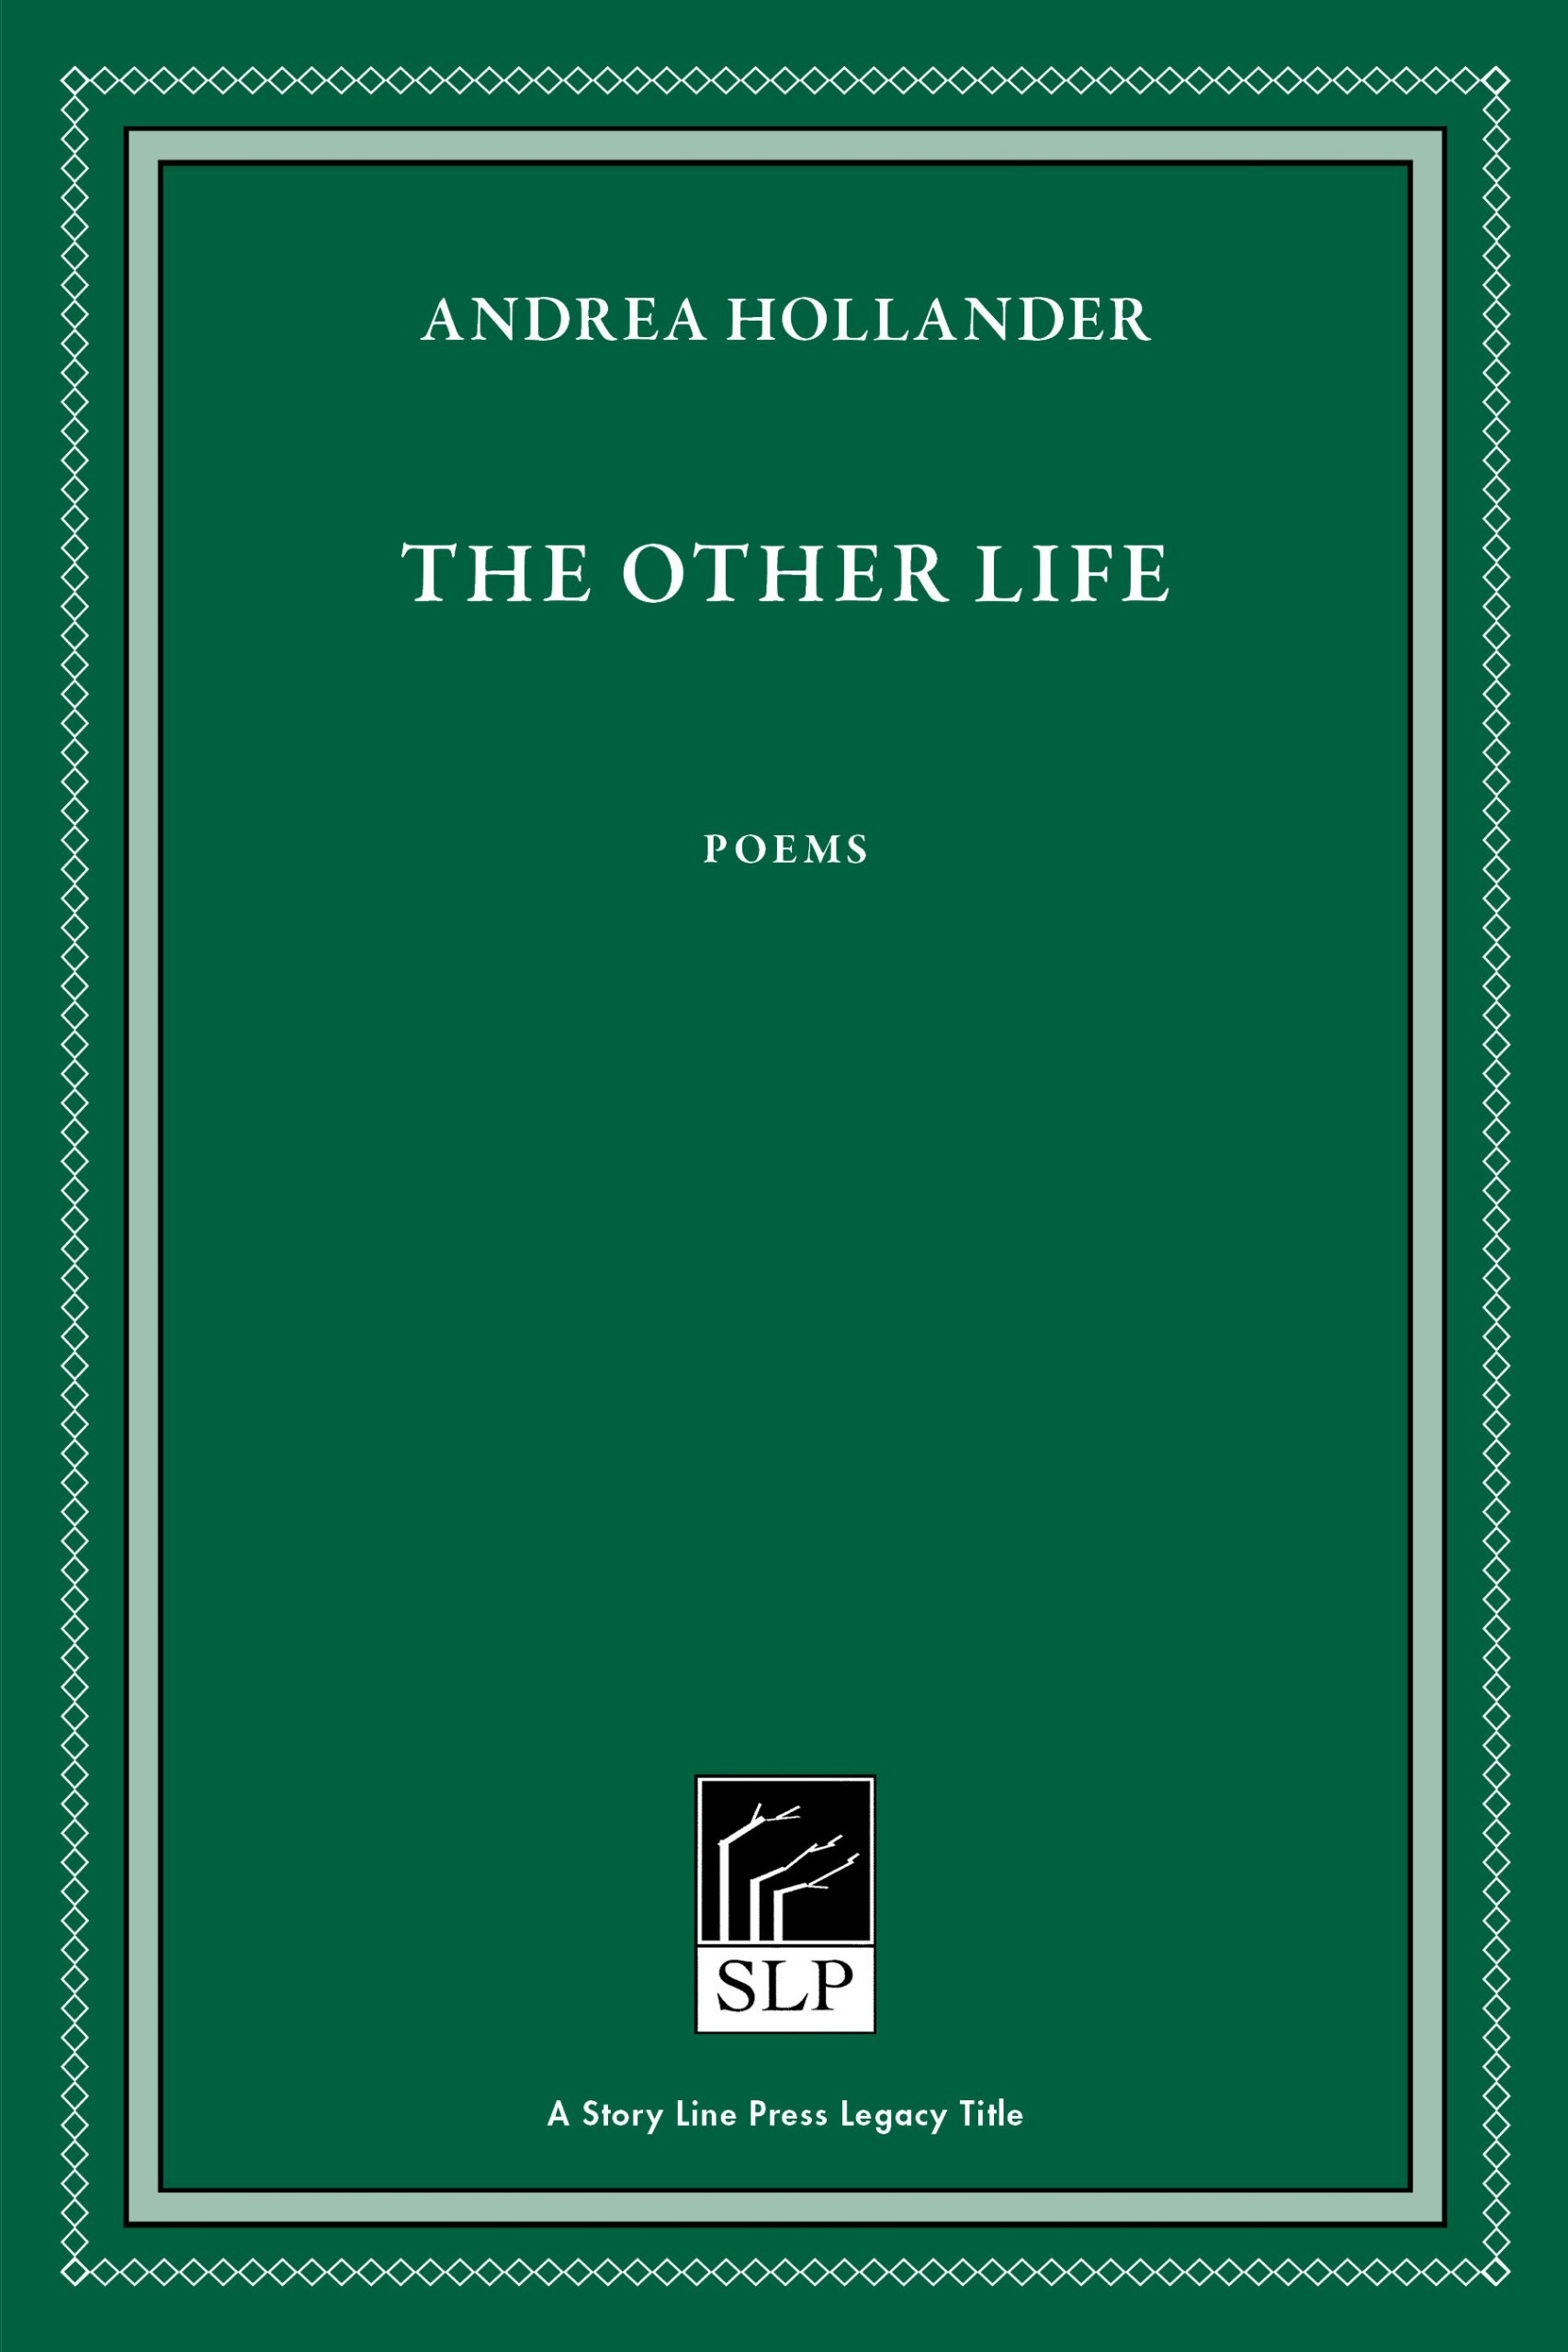 Story Line Press legacy tittle, Andrea Hollander The Other Life Poems, white text against emerald green background.